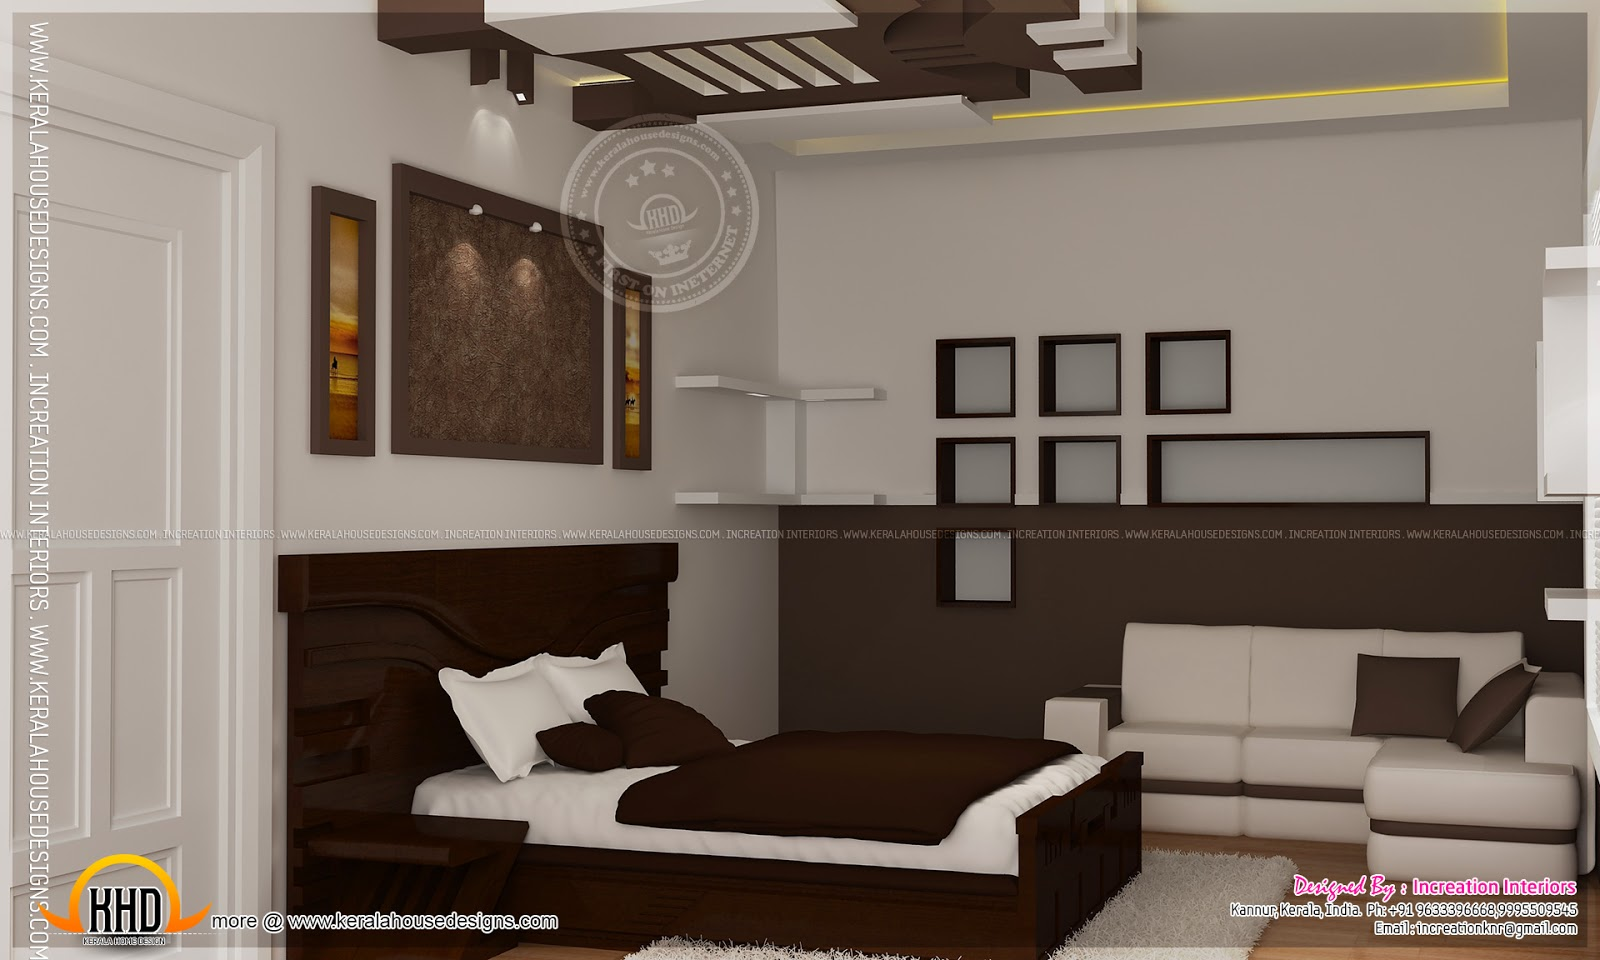 House Interior Design Kannur Kerala